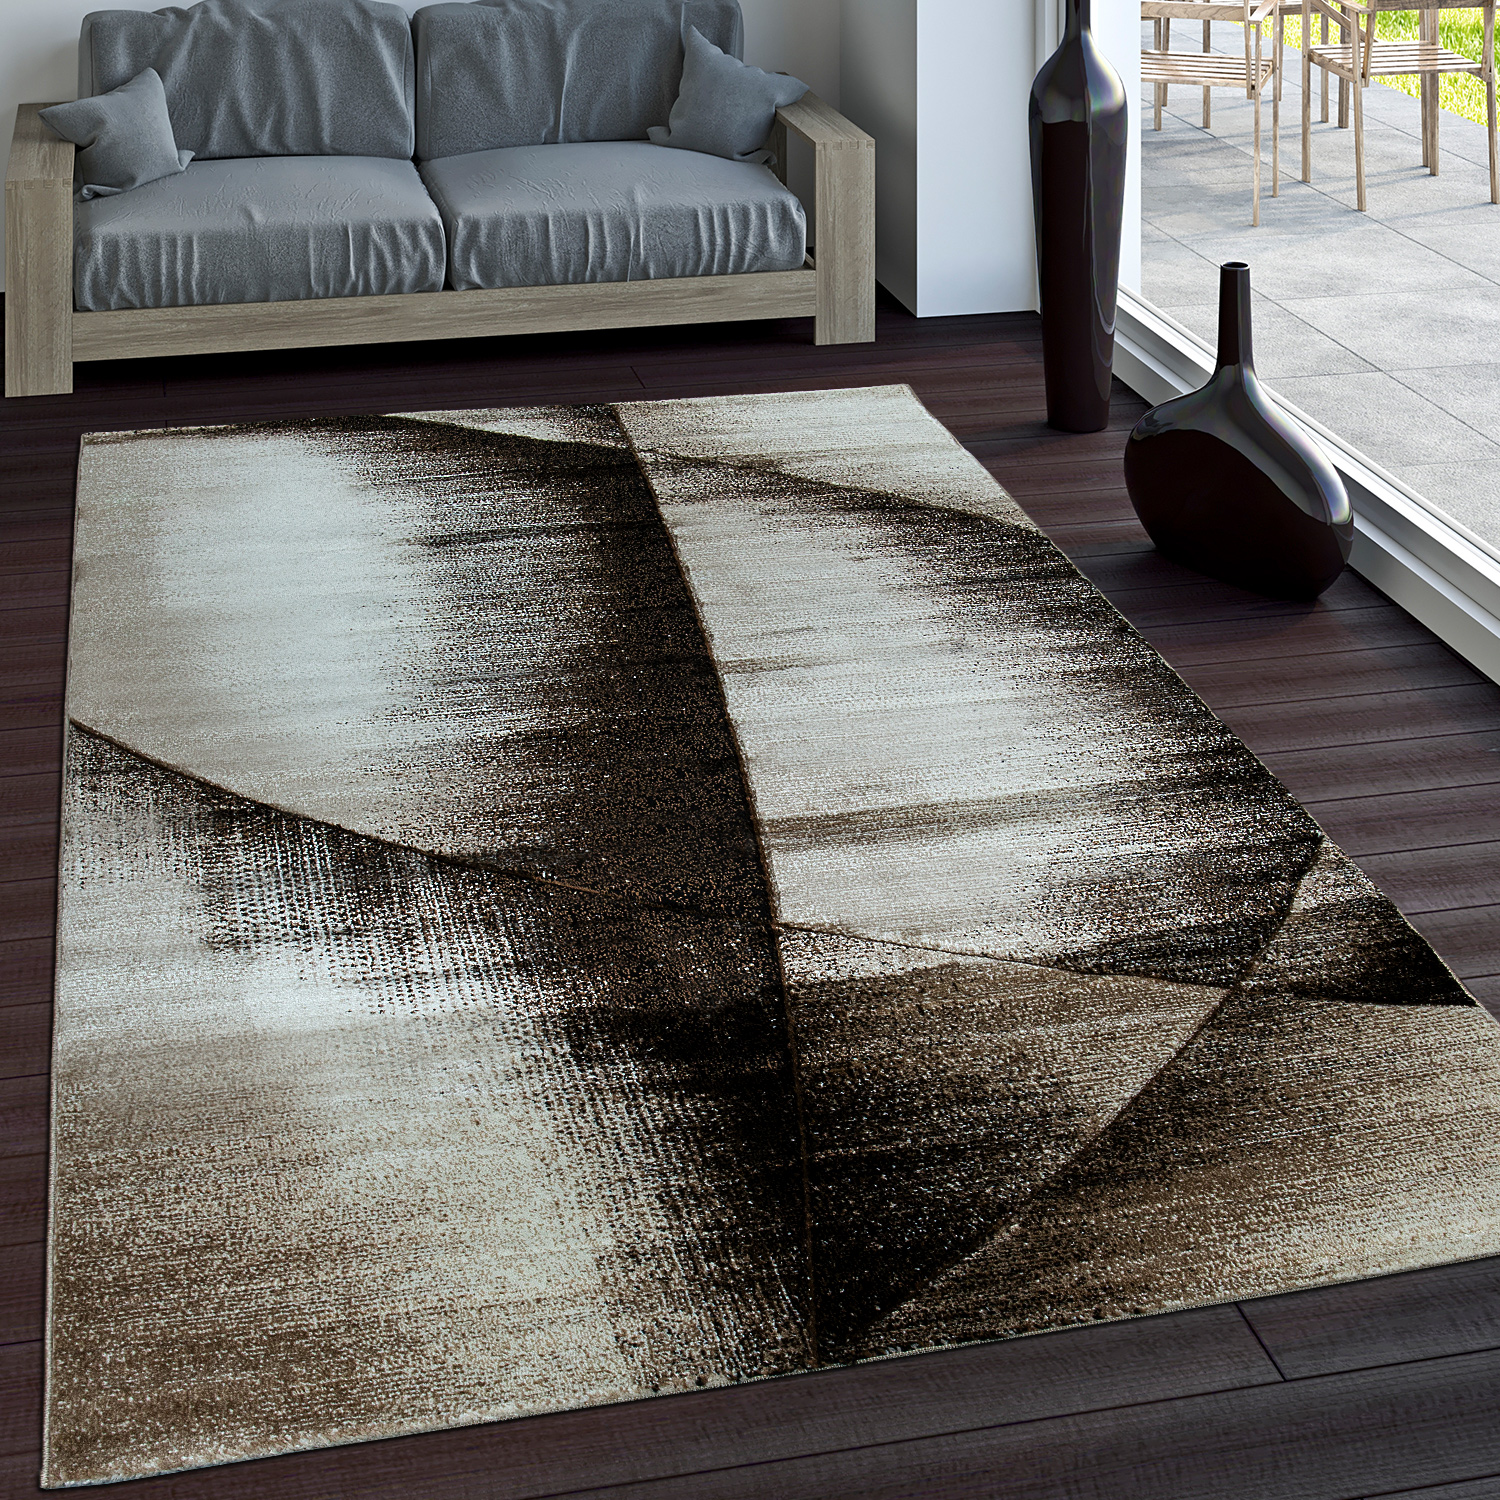 Luxury Designer Rug - Contour Cut - Geometric - Mottled Brown Beige Cream